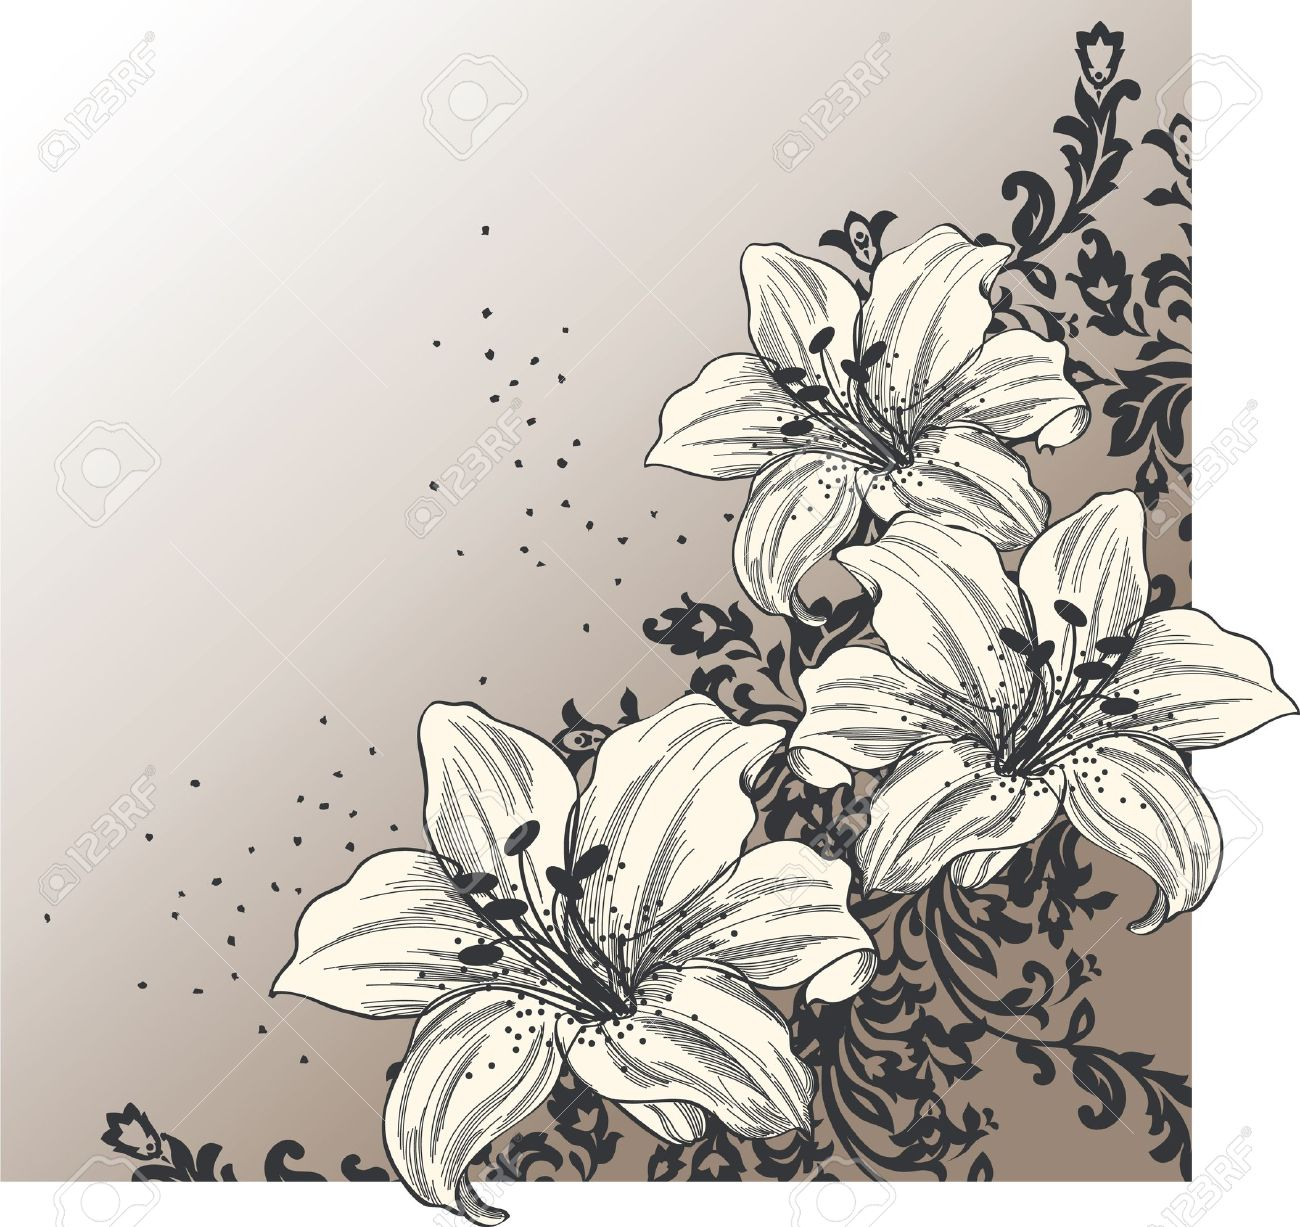 Abstract Background With Blooming Lilies Royalty Free Cliparts